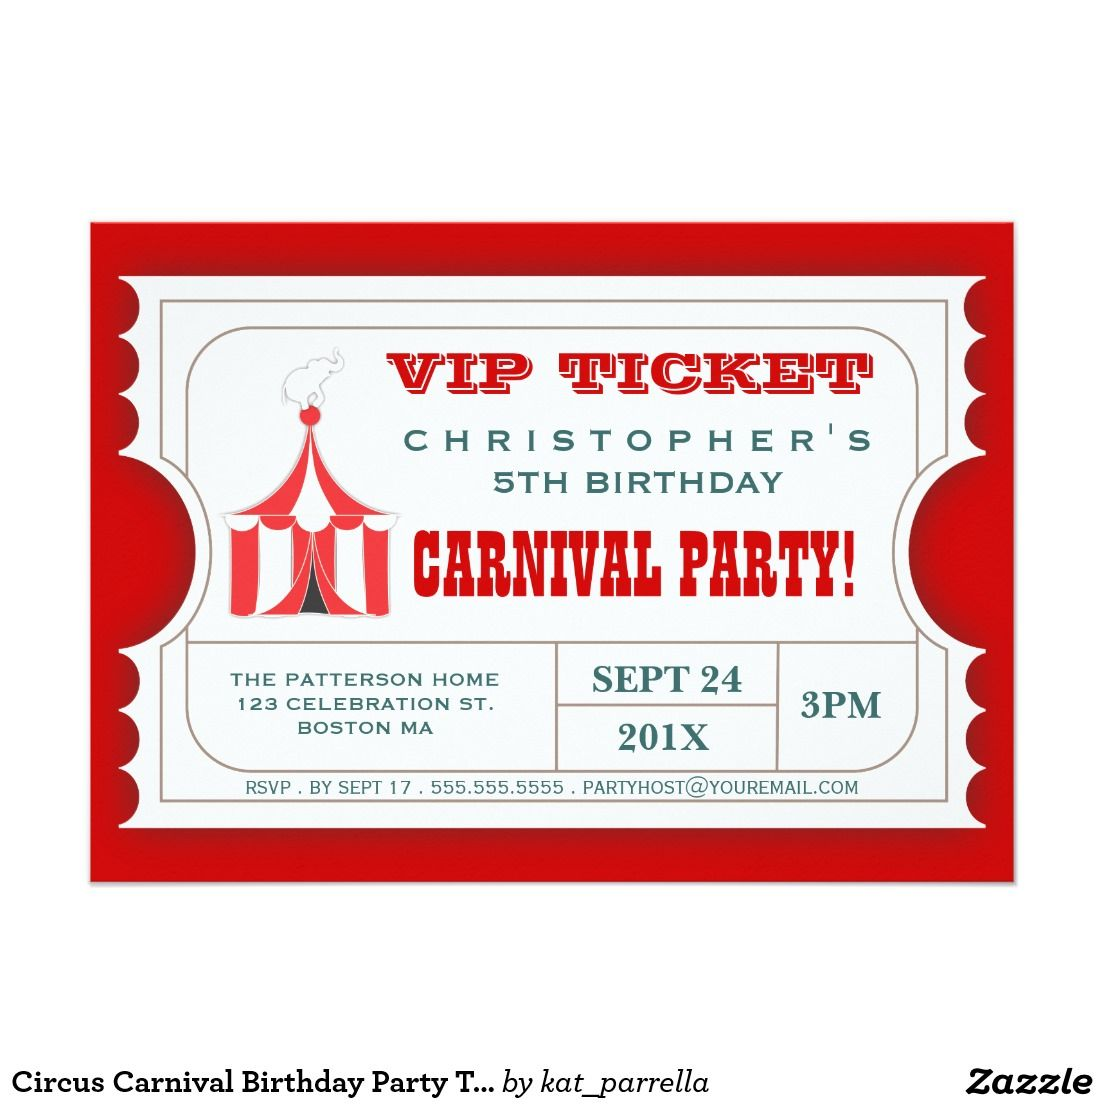 Circus Carnival Birthday Party Ticket Invitation | Party tickets ...